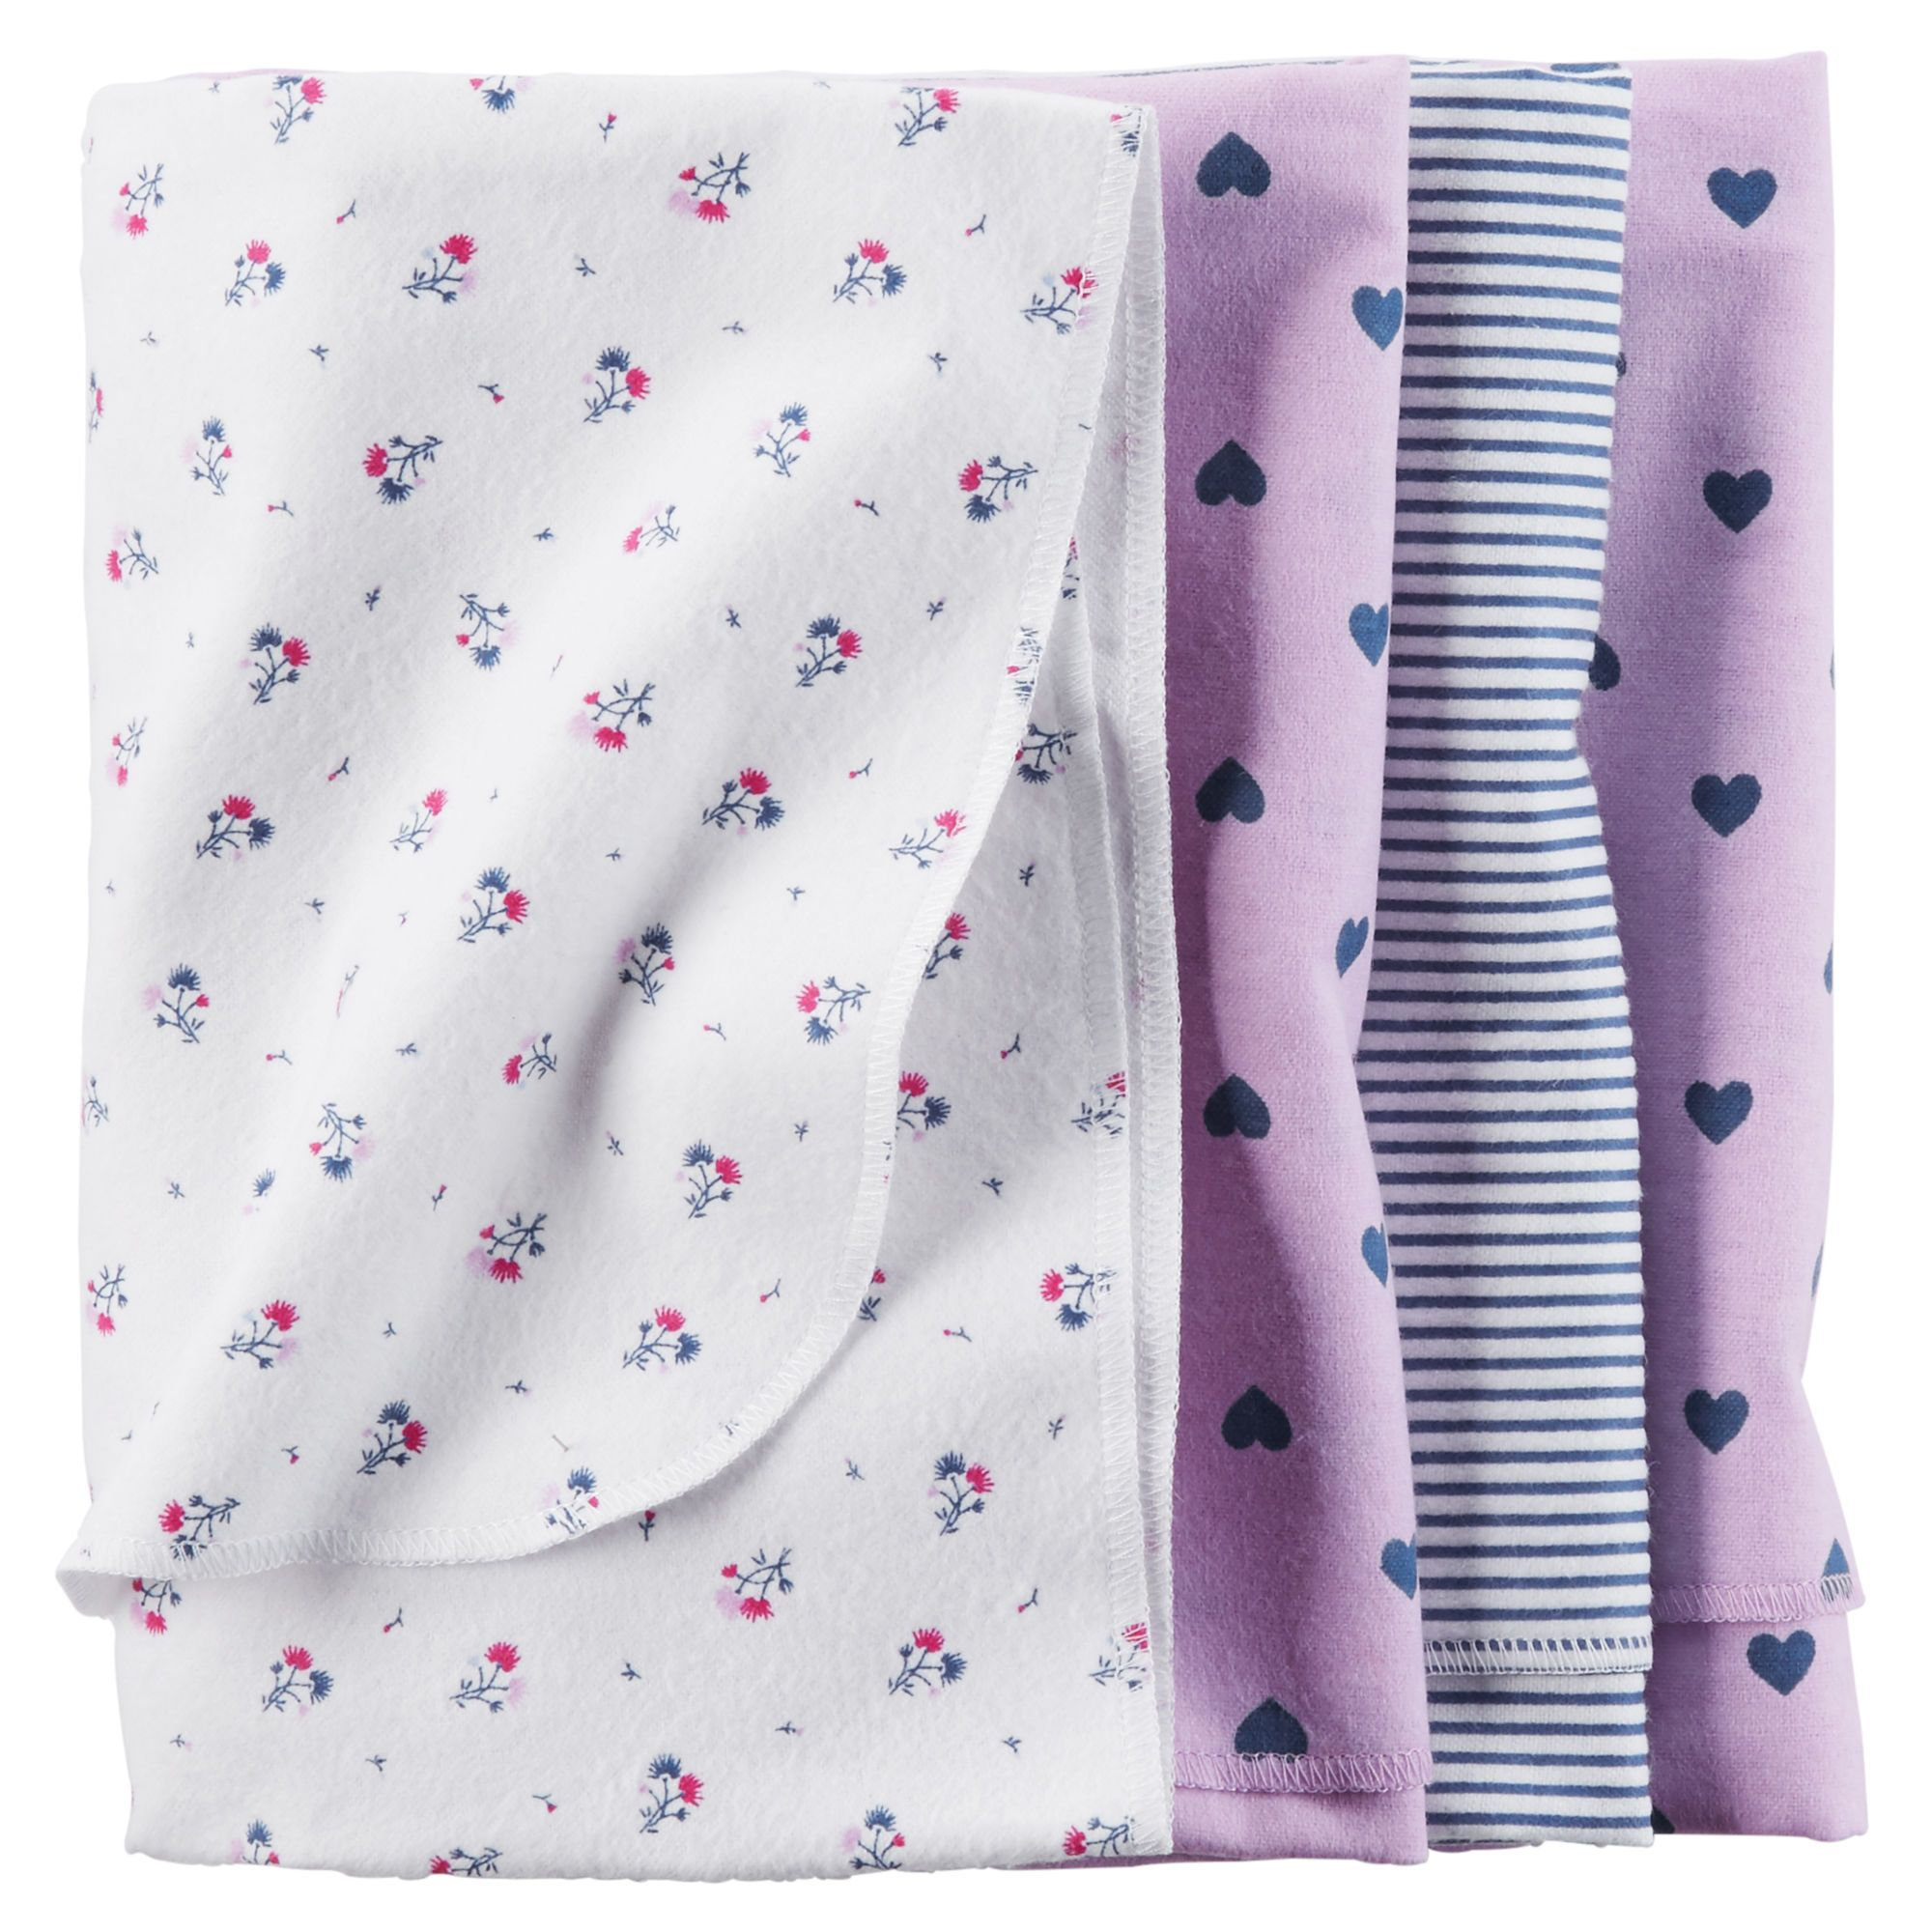 4-Pack Receiving Blankets | Carter's $13.00